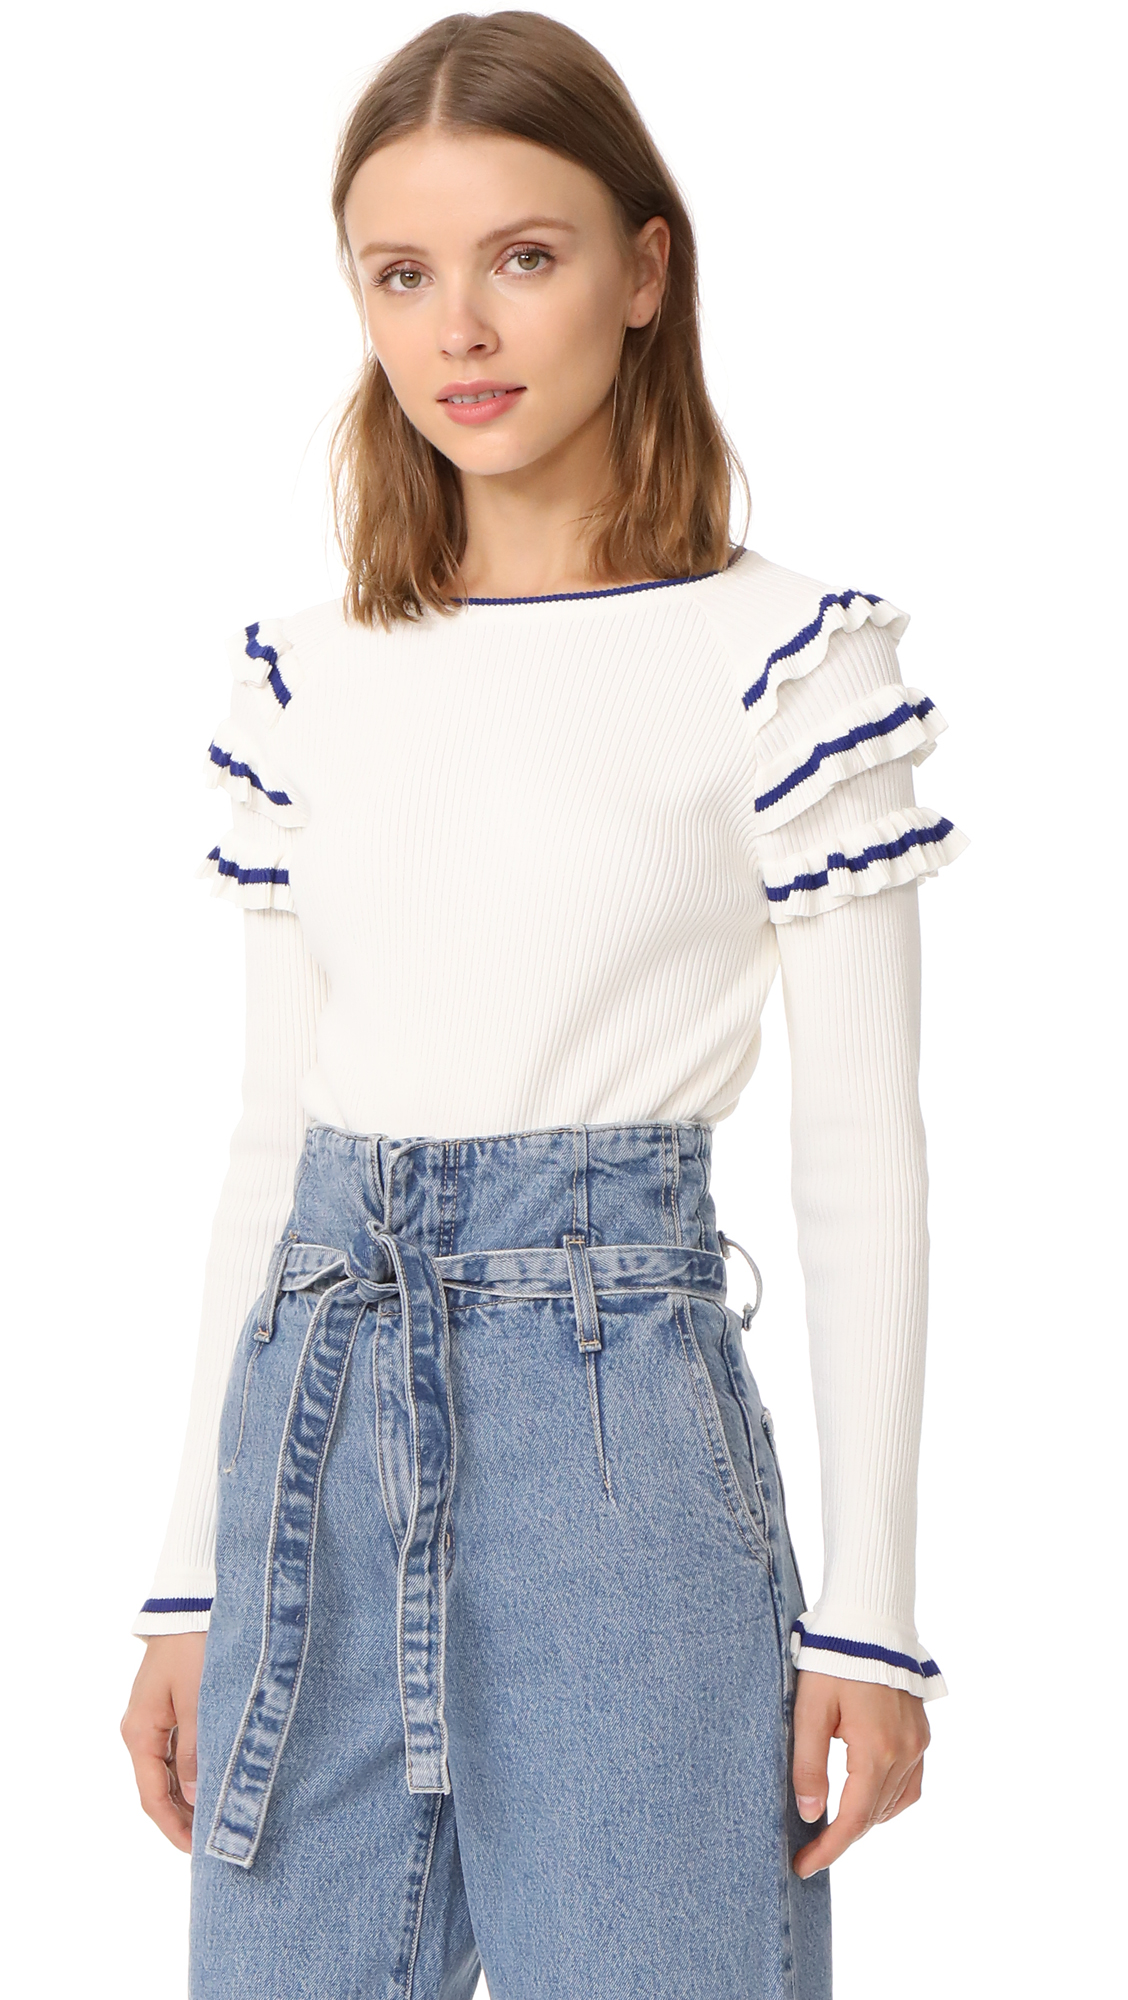 ENGLISH FACTORY Ruffle Sweater - Off White/Blue